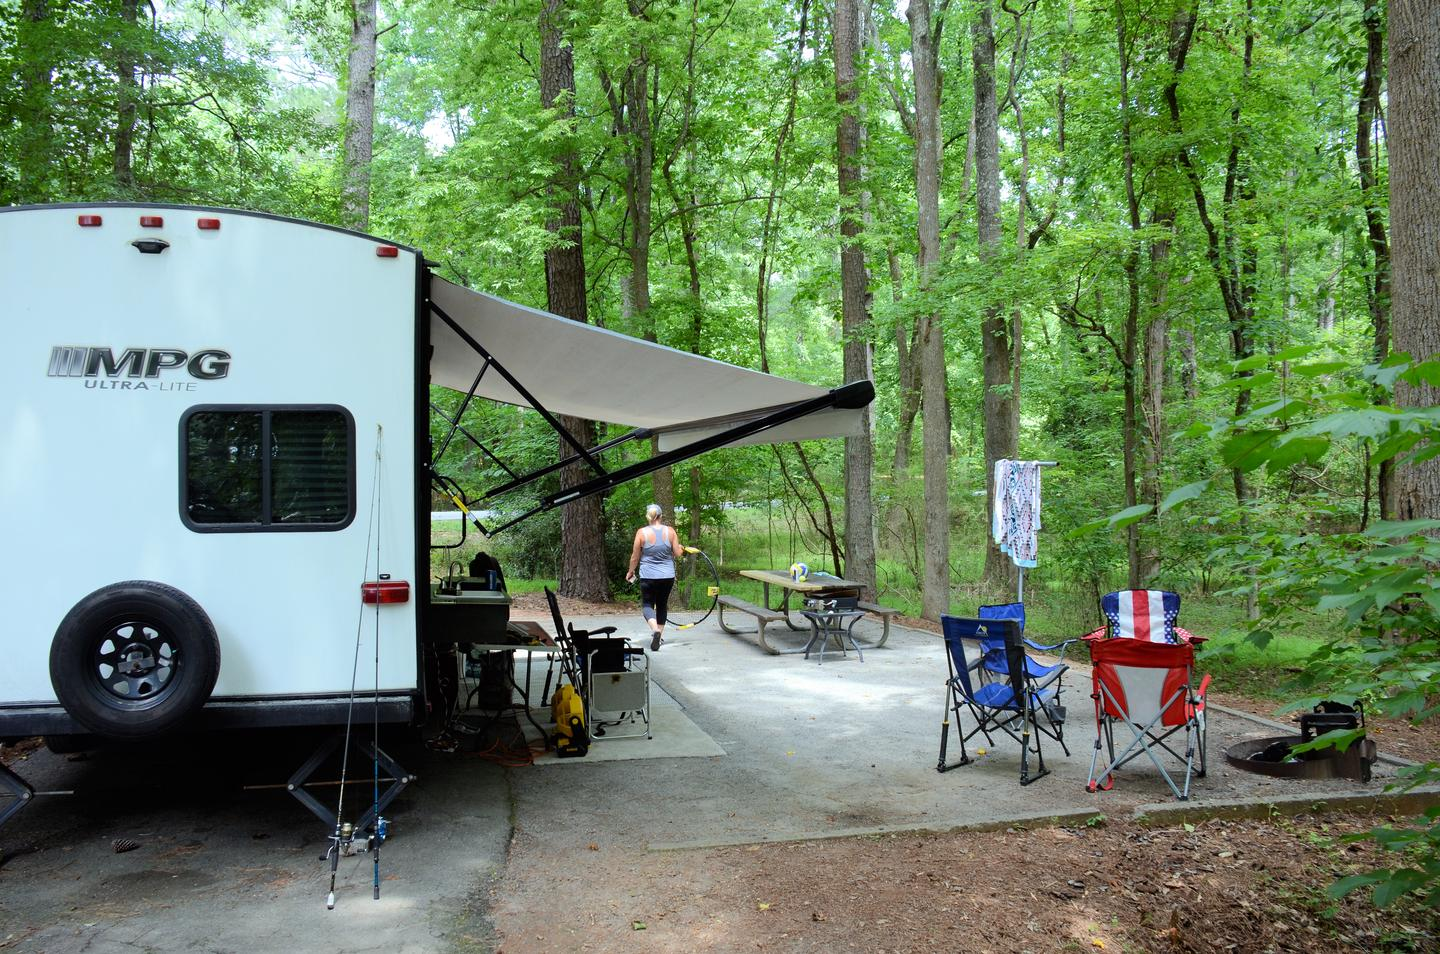 Awning-side clearance, campsite view..Victoria Campground, campsite 37.